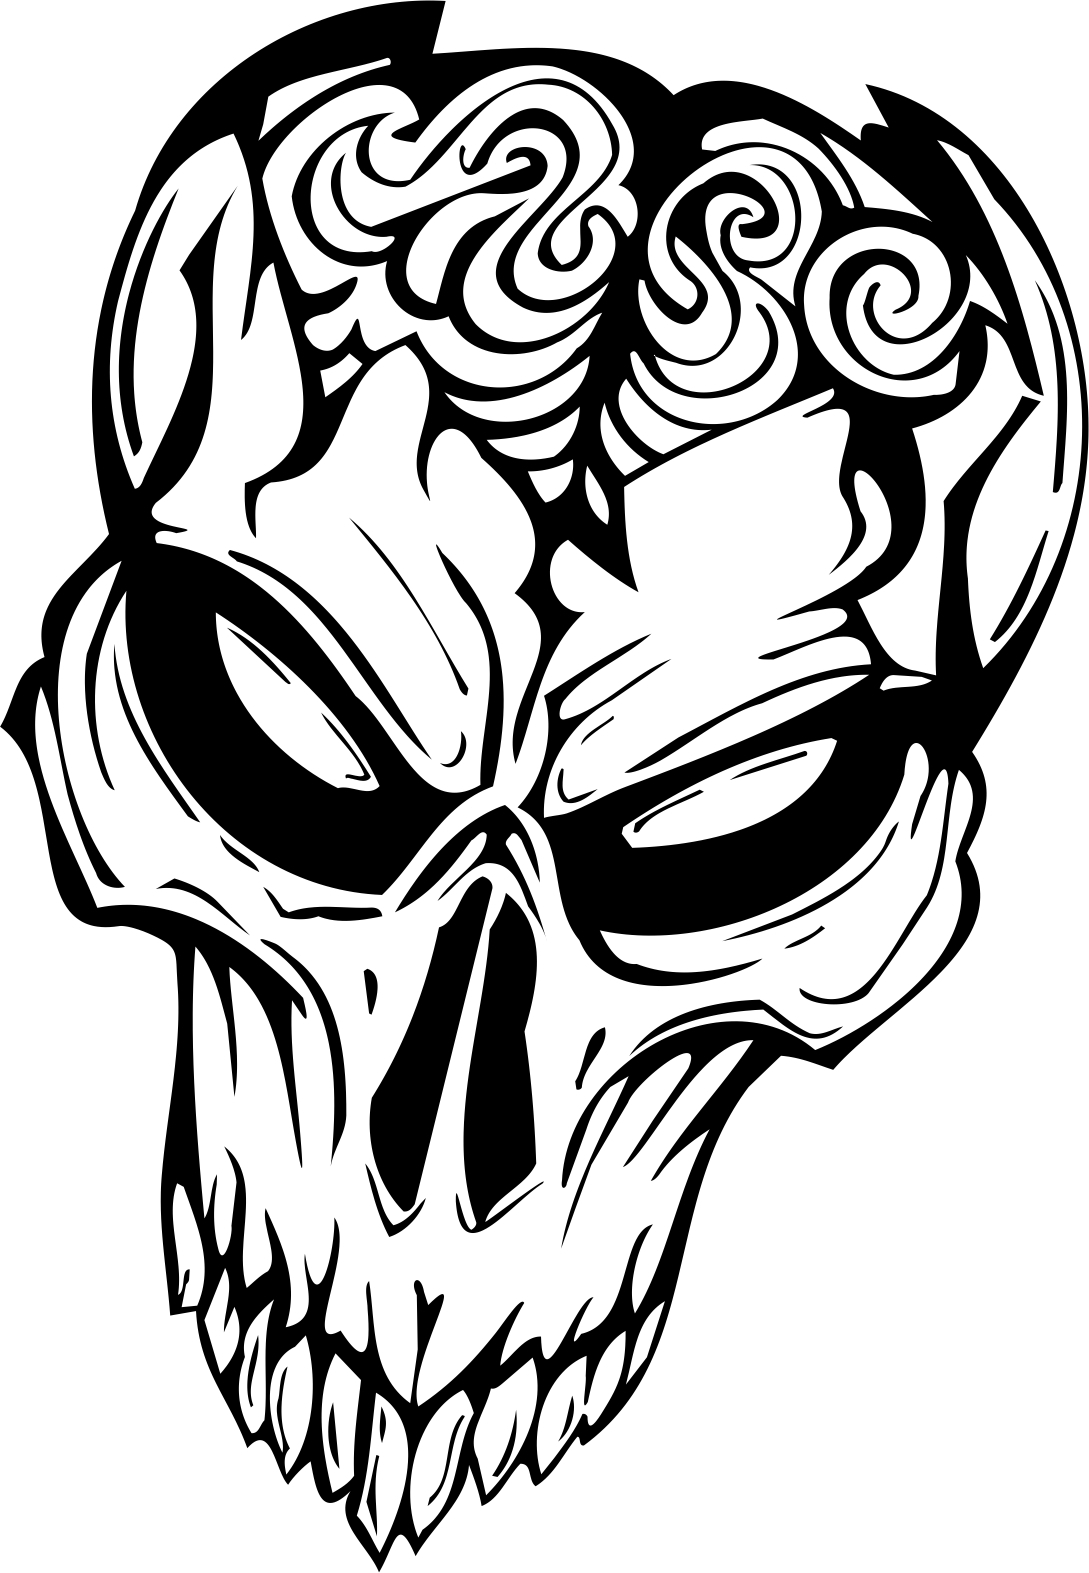 mardi gras mask coloring page - Monster Masken mscull 001